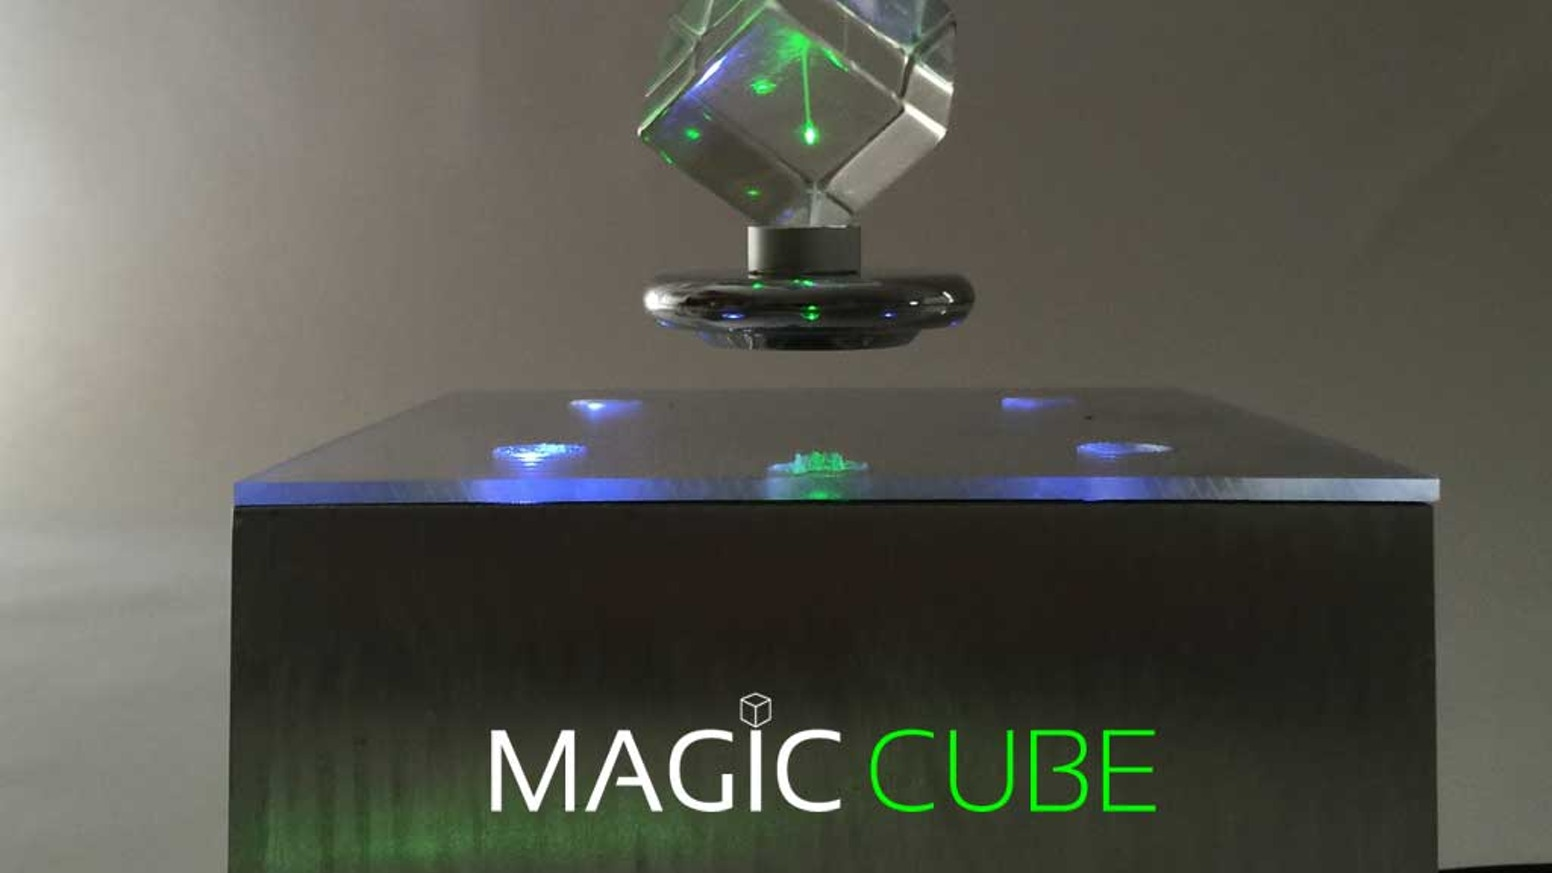 Mesmerizing: Magic Cube levitates prisms lit by  an embedded green laser. Designed in California. Order yours today!